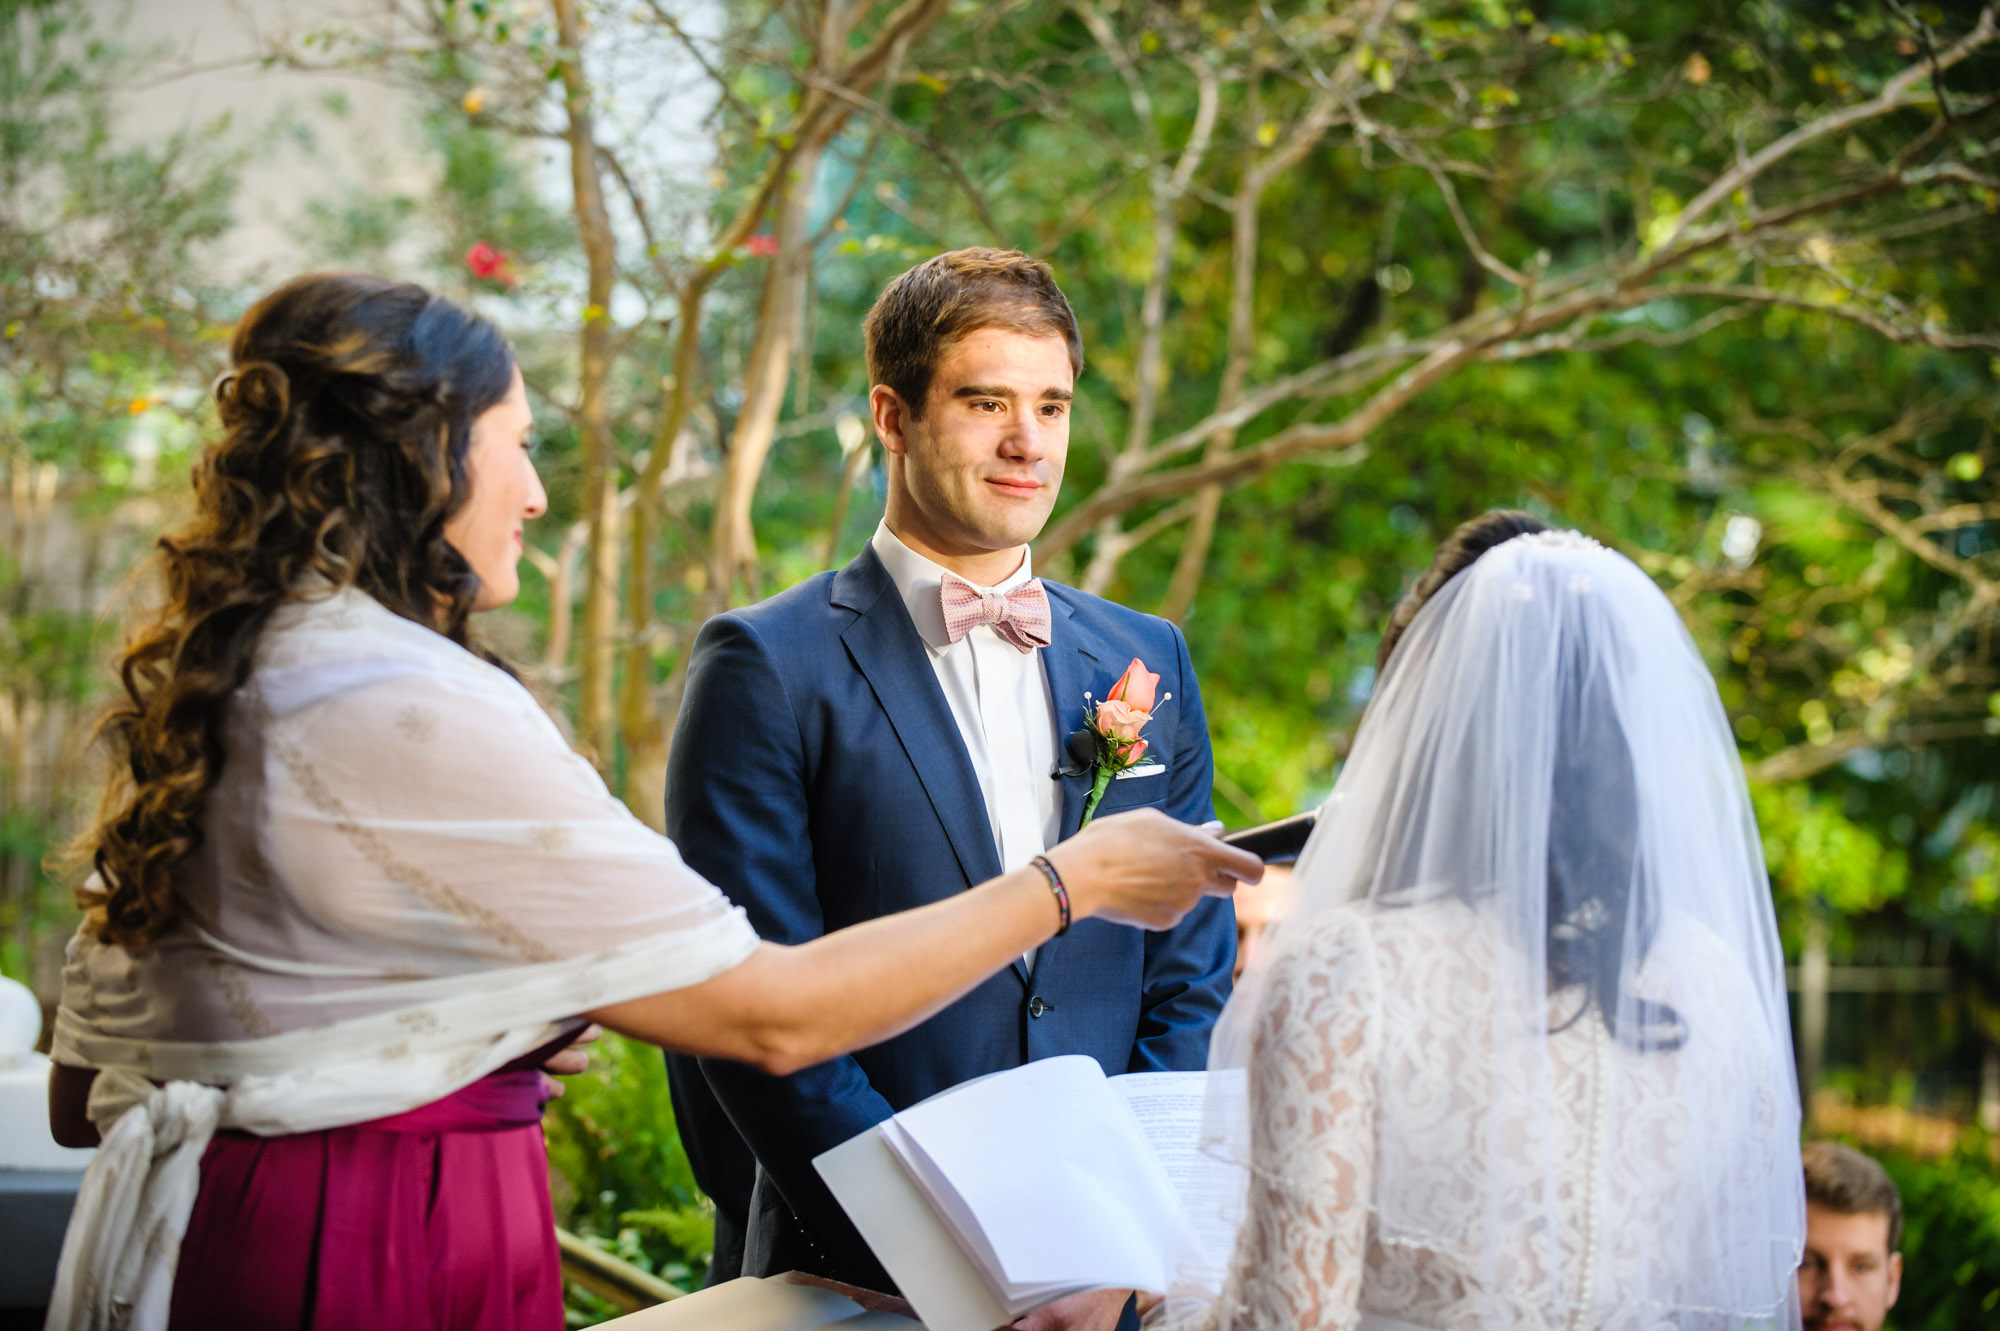 Wedding at the Columns Hotel, photographed by Scott Myers